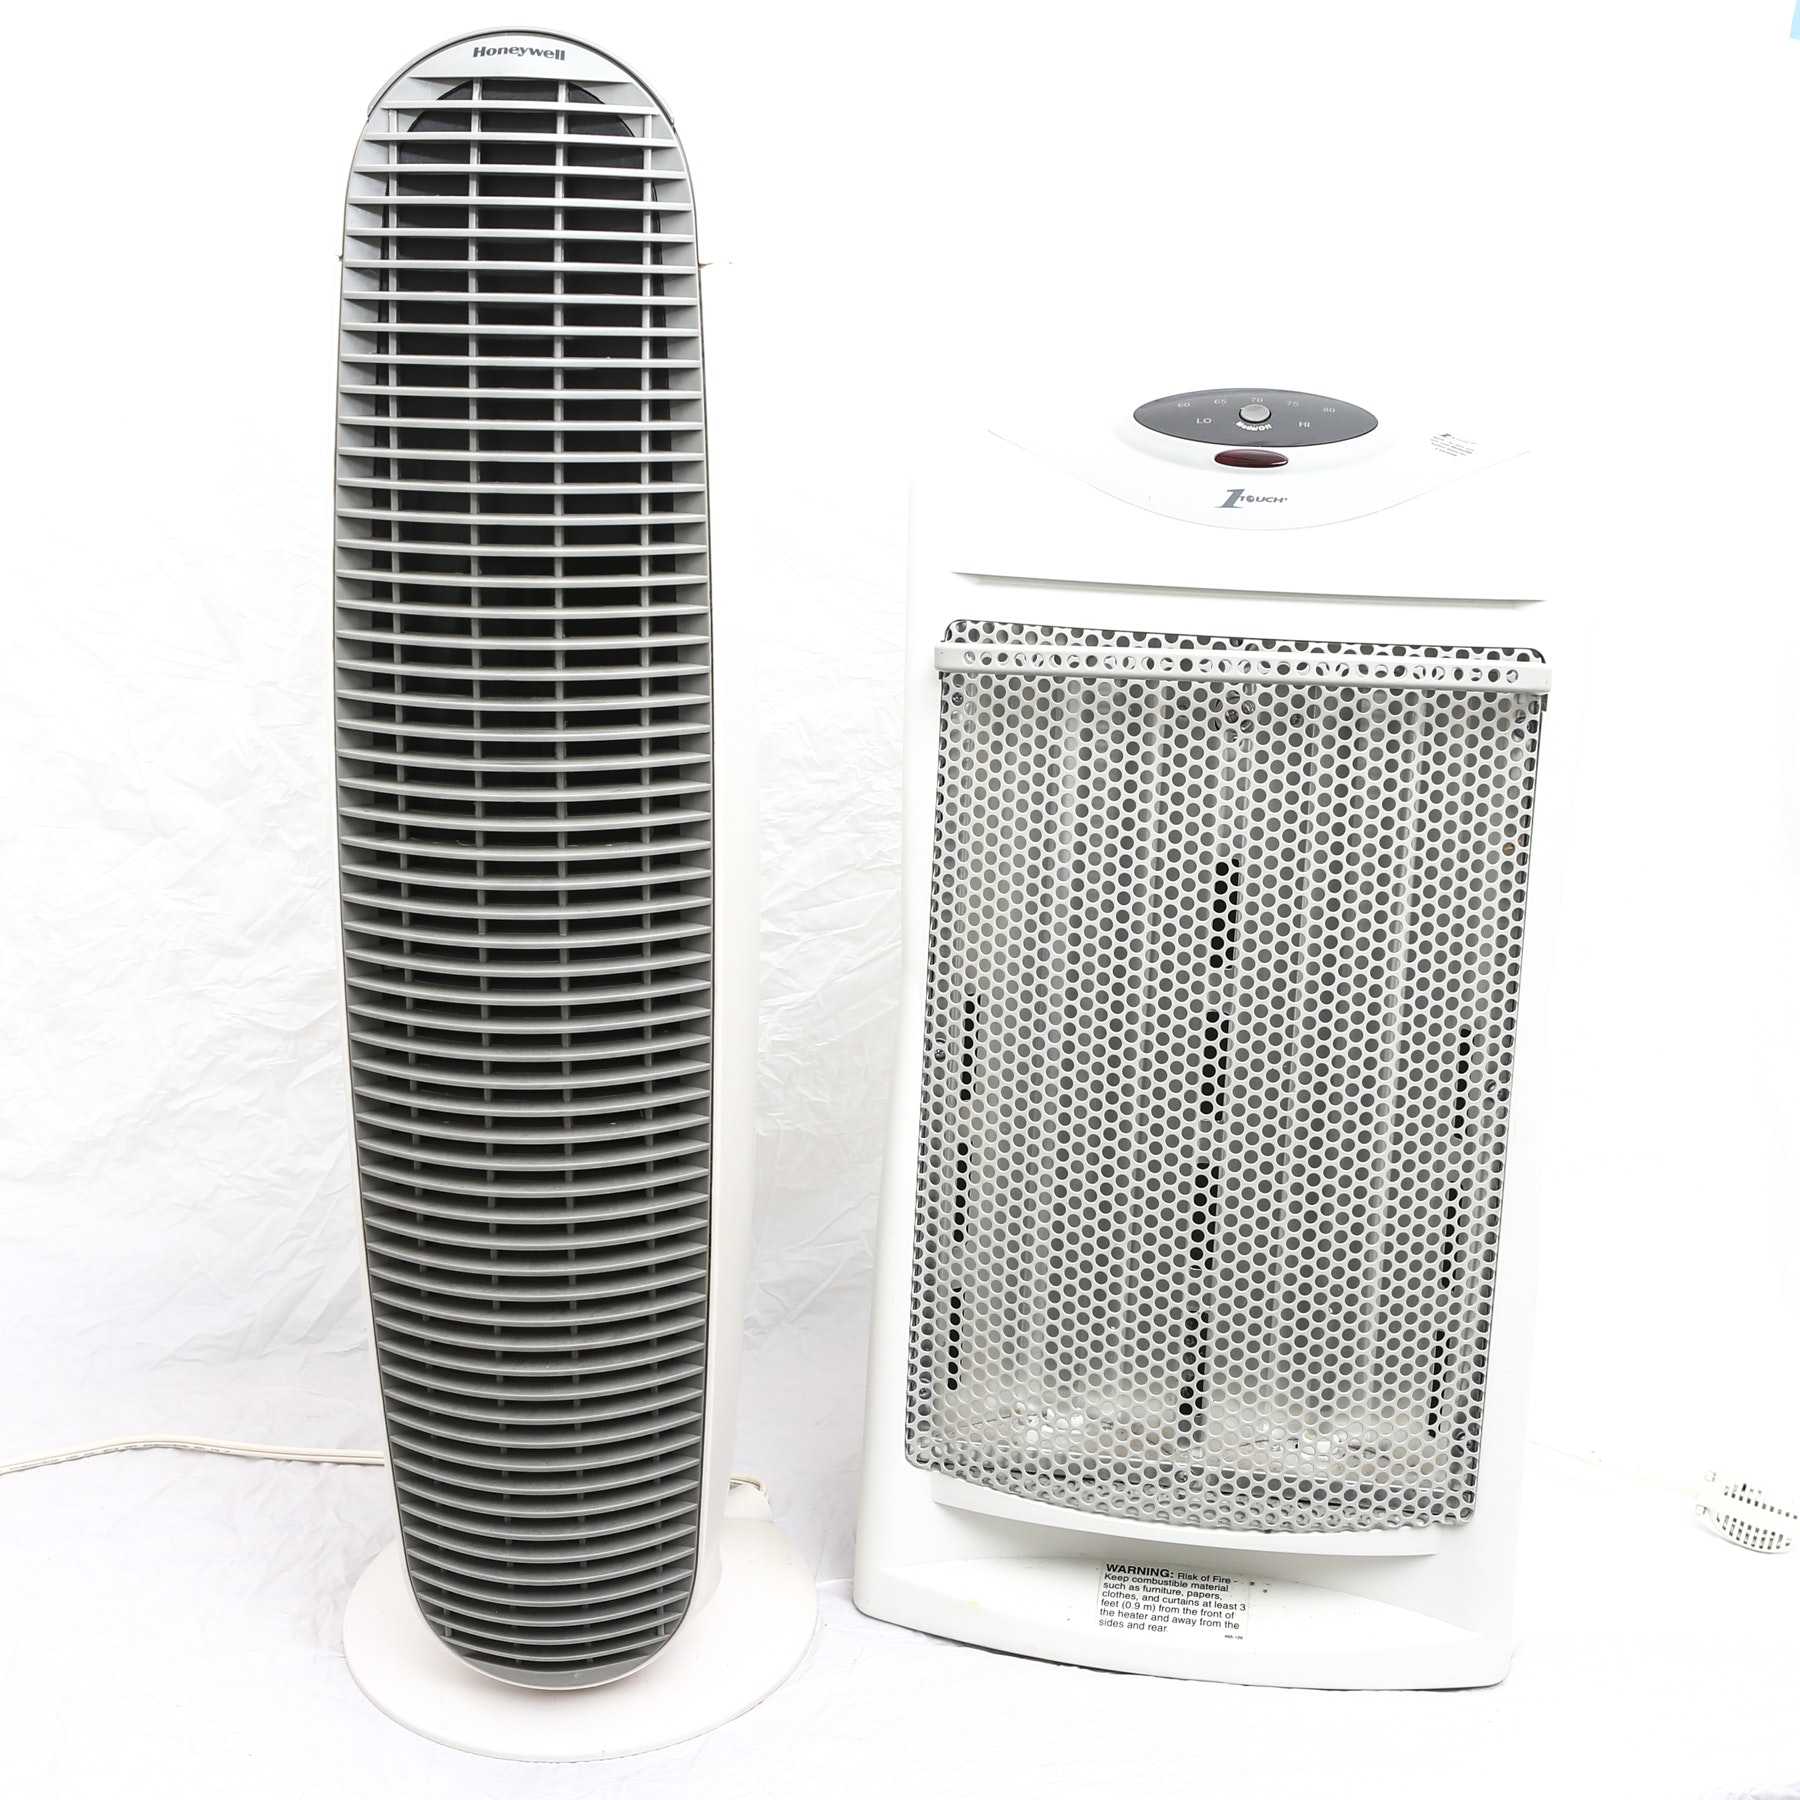 Honeywell Air Purifier and Holmes 1 Touch Space Heater